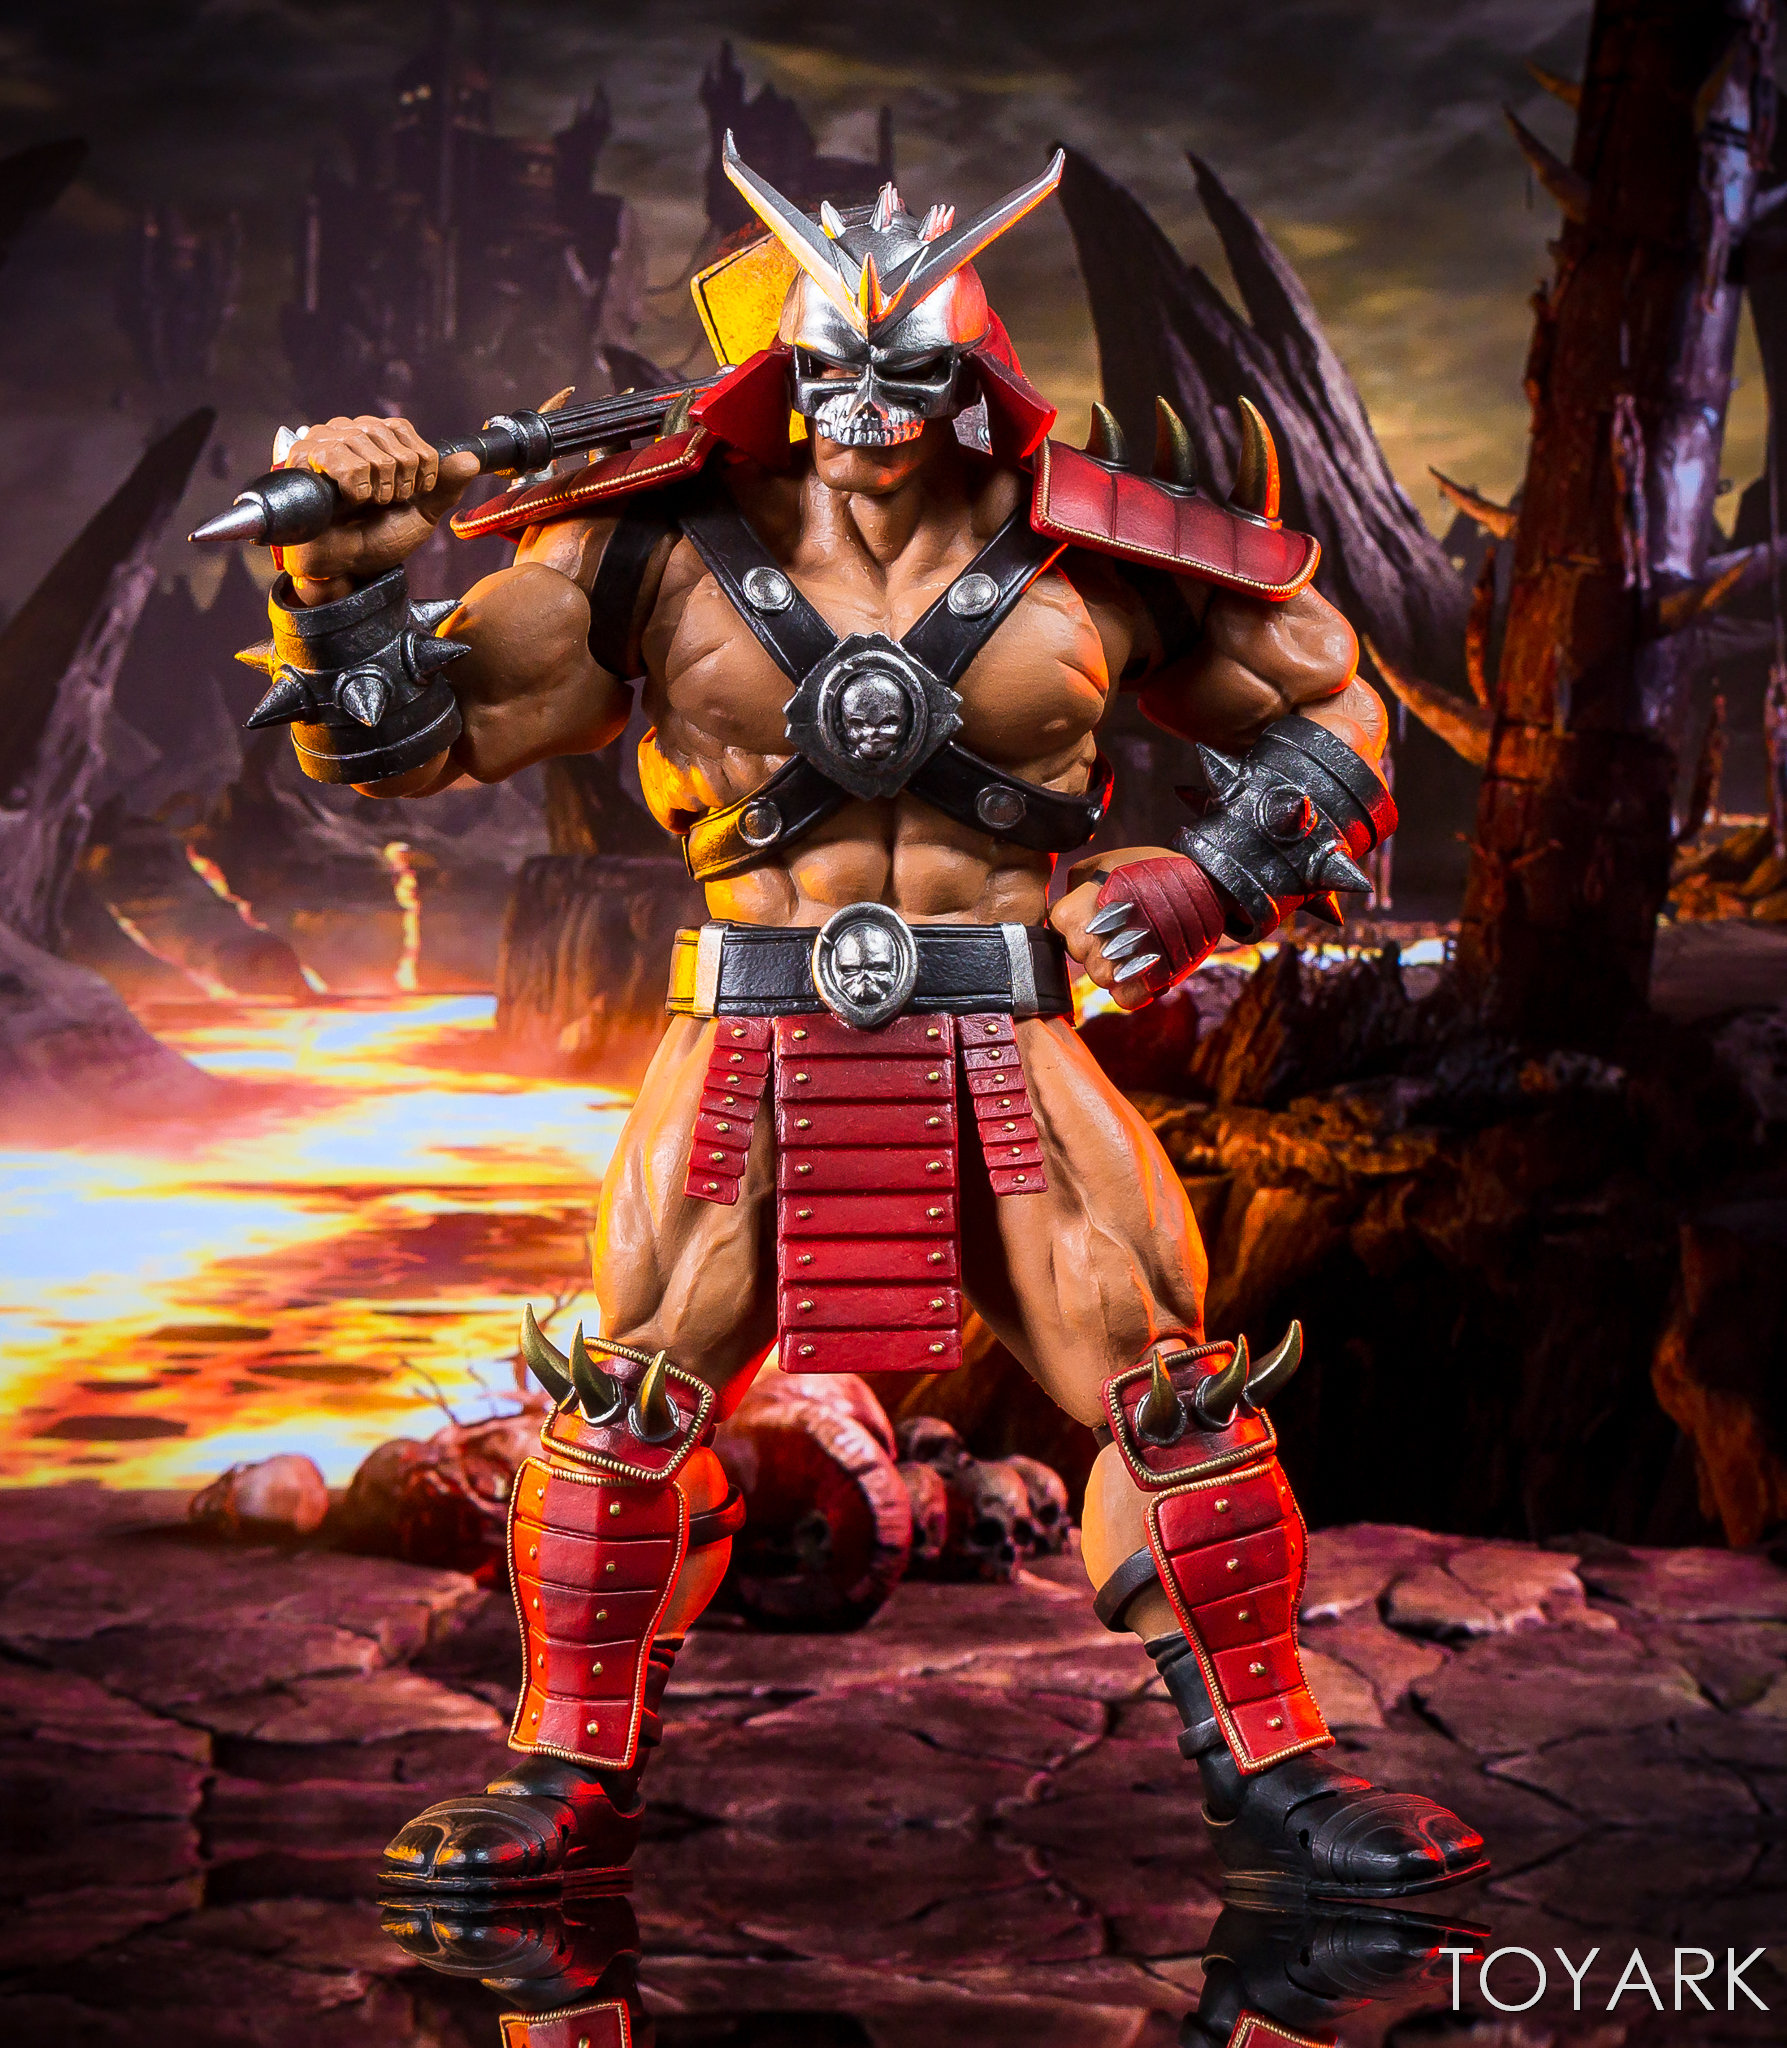 https://news.toyark.com/wp-content/uploads/sites/4/2018/06/Storm-Mortal-Kombat-Shao-Kahn-Figure-041.jpg